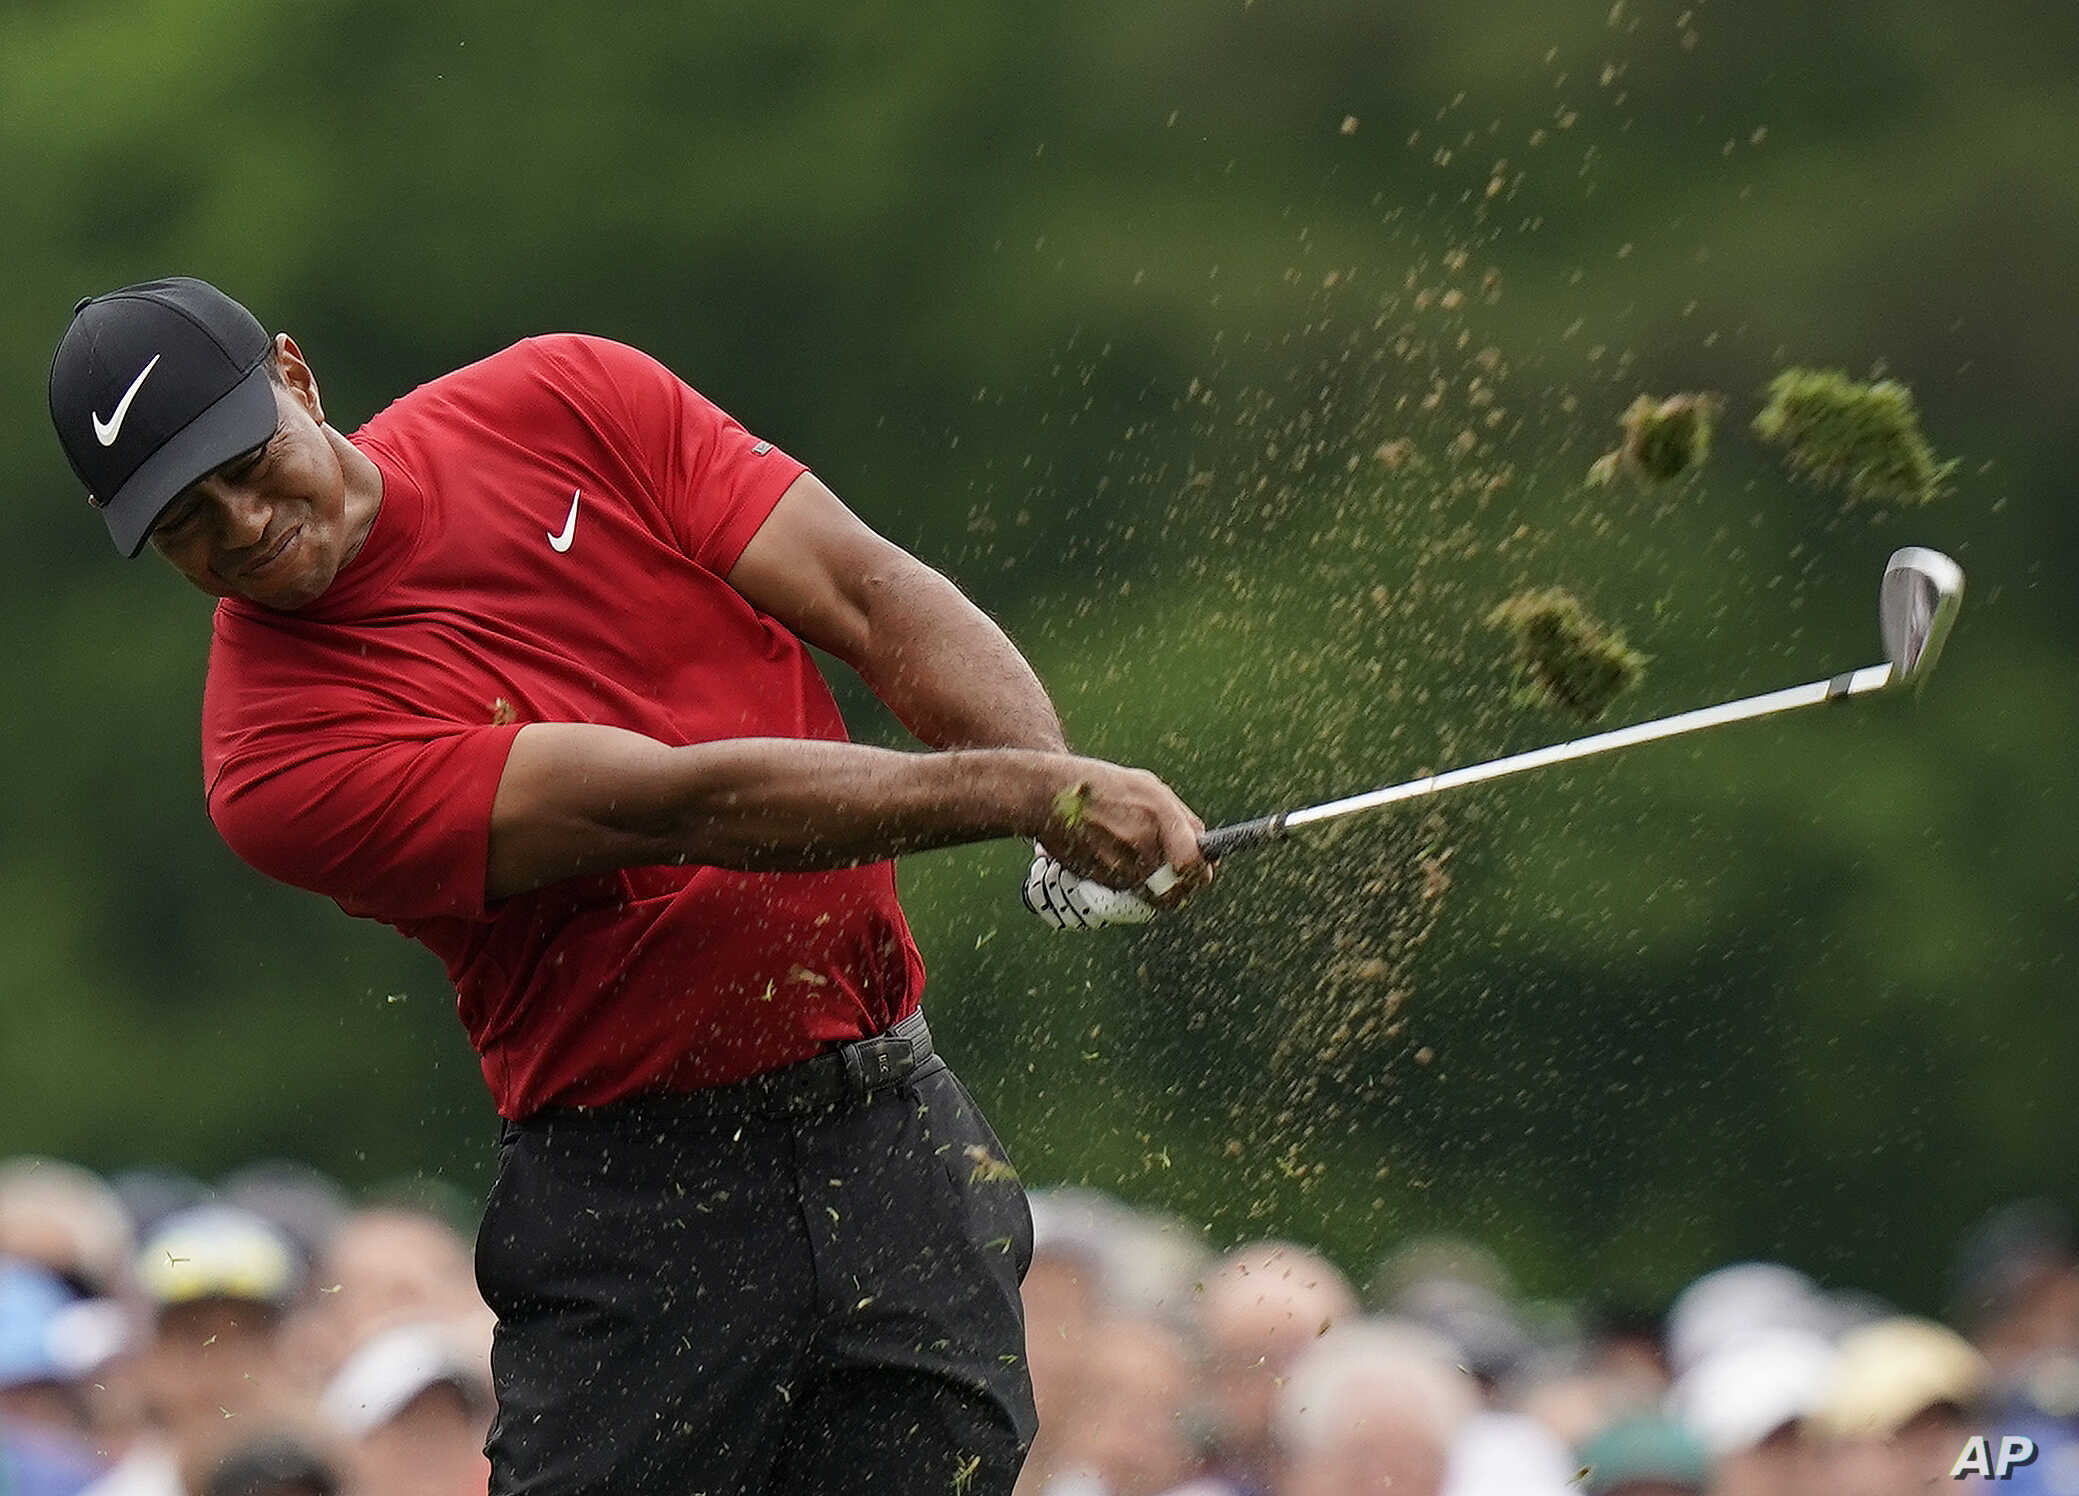 Tiger Woods' Victory in Masters a Win for Golf Business